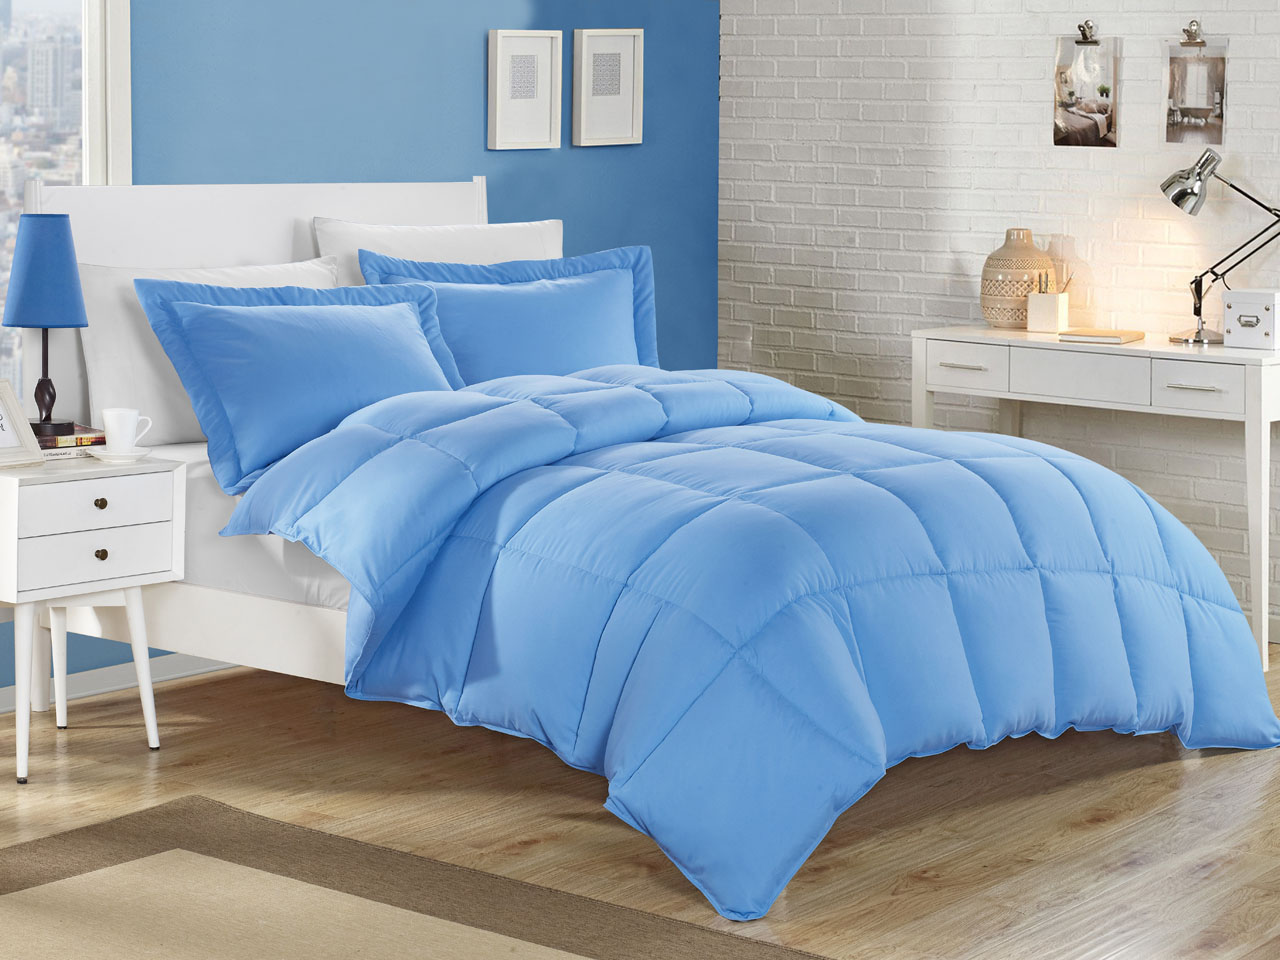 kinglinen down alternative comforter set ebay